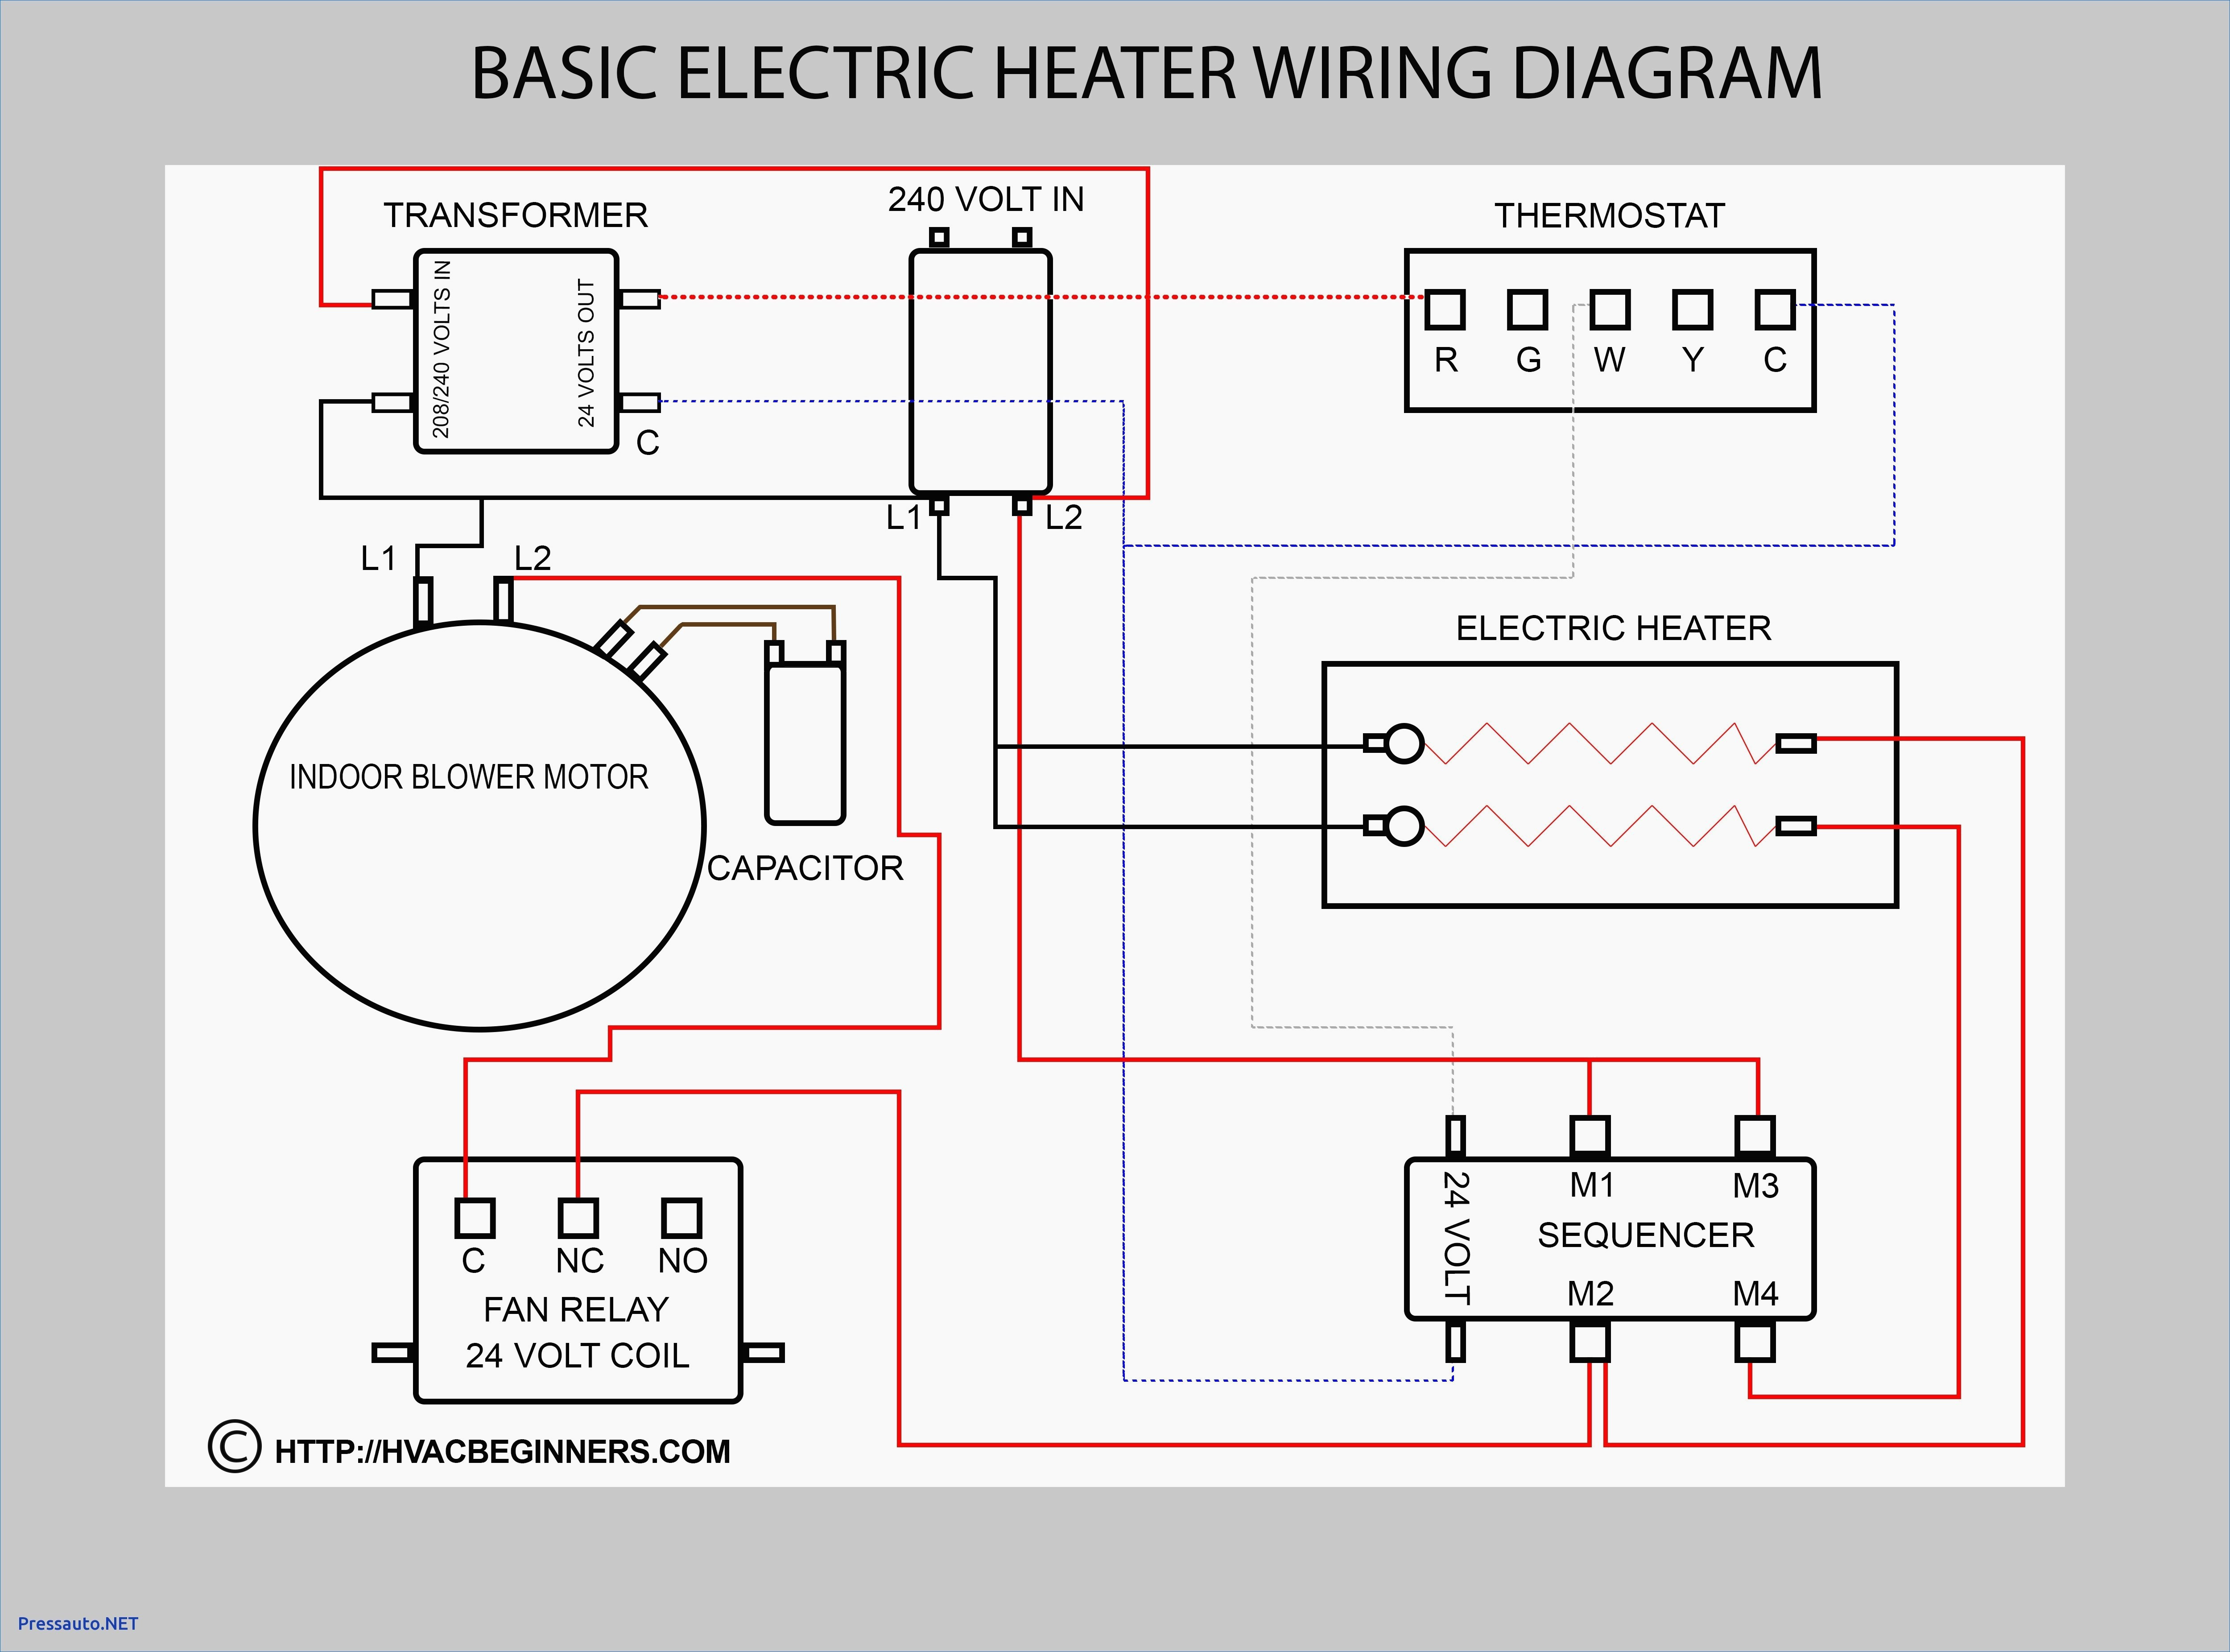 thermostat wiring diagram Download-house thermostat wiring diagram Collection Wiring Diagrams For Central Heating Save Wiring Diagram For Heating DOWNLOAD Wiring Diagram 14-h